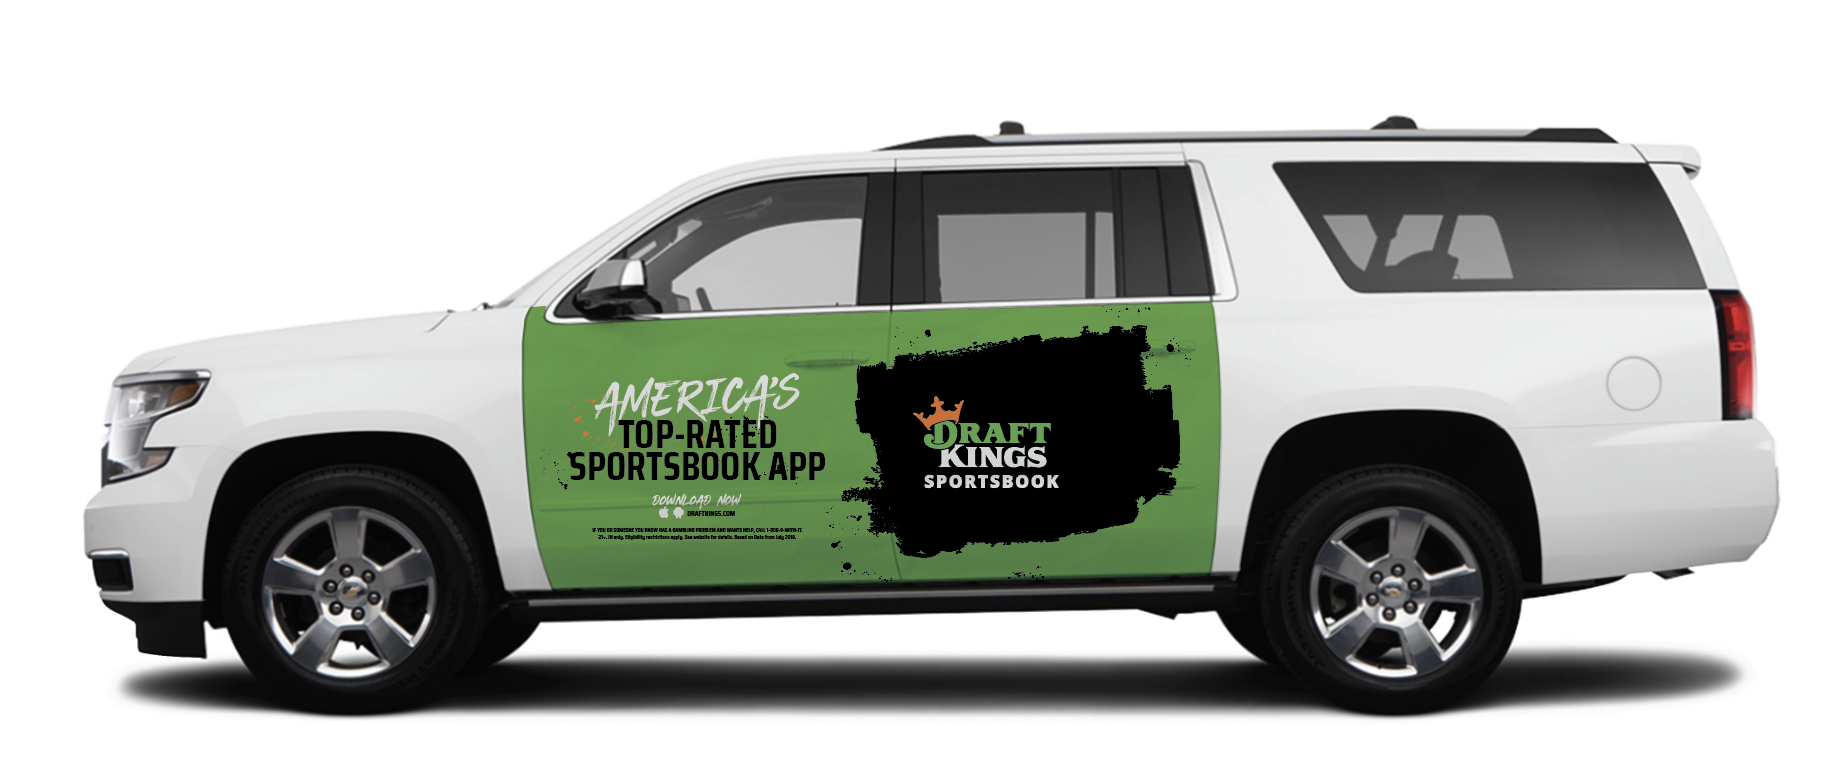 - We're proud to partner with DraftKings to provide rideshare drivers in Indianapolis an easy way to earn money on their vehicle. Sign up today!